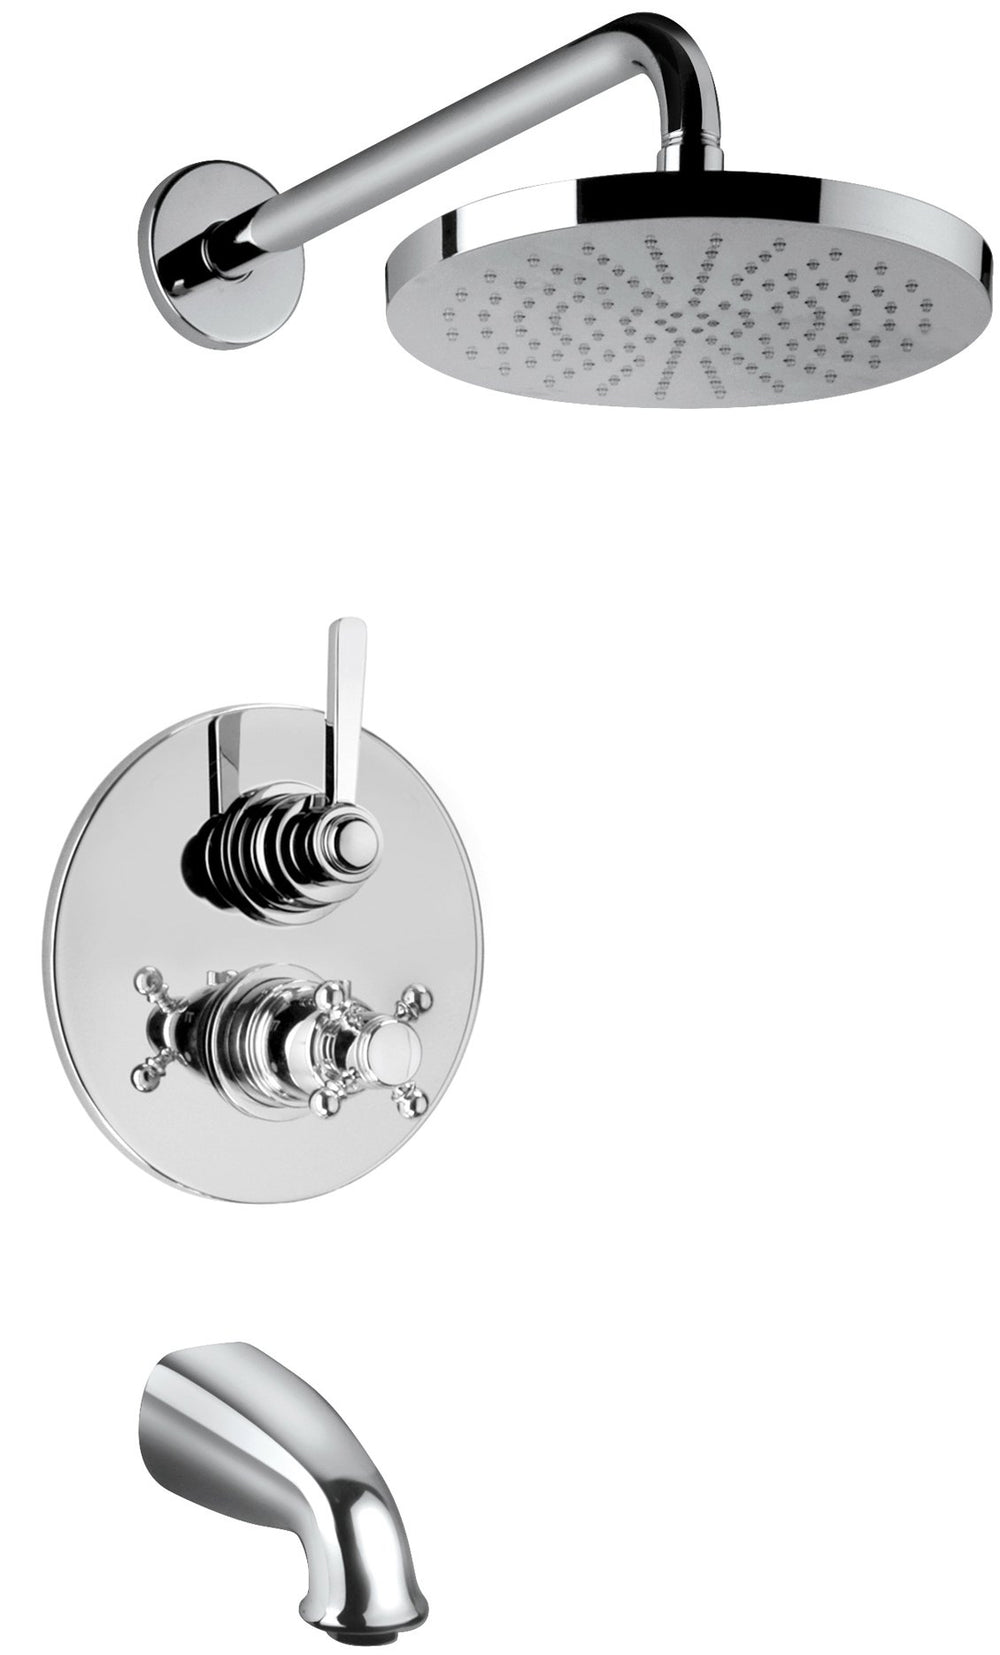 Latoscana Firenze Thermostatic Valve With 2 Way Diverter Volume Control In Brushed Nickel Finish bathtub and showerhead faucet systems Latoscana